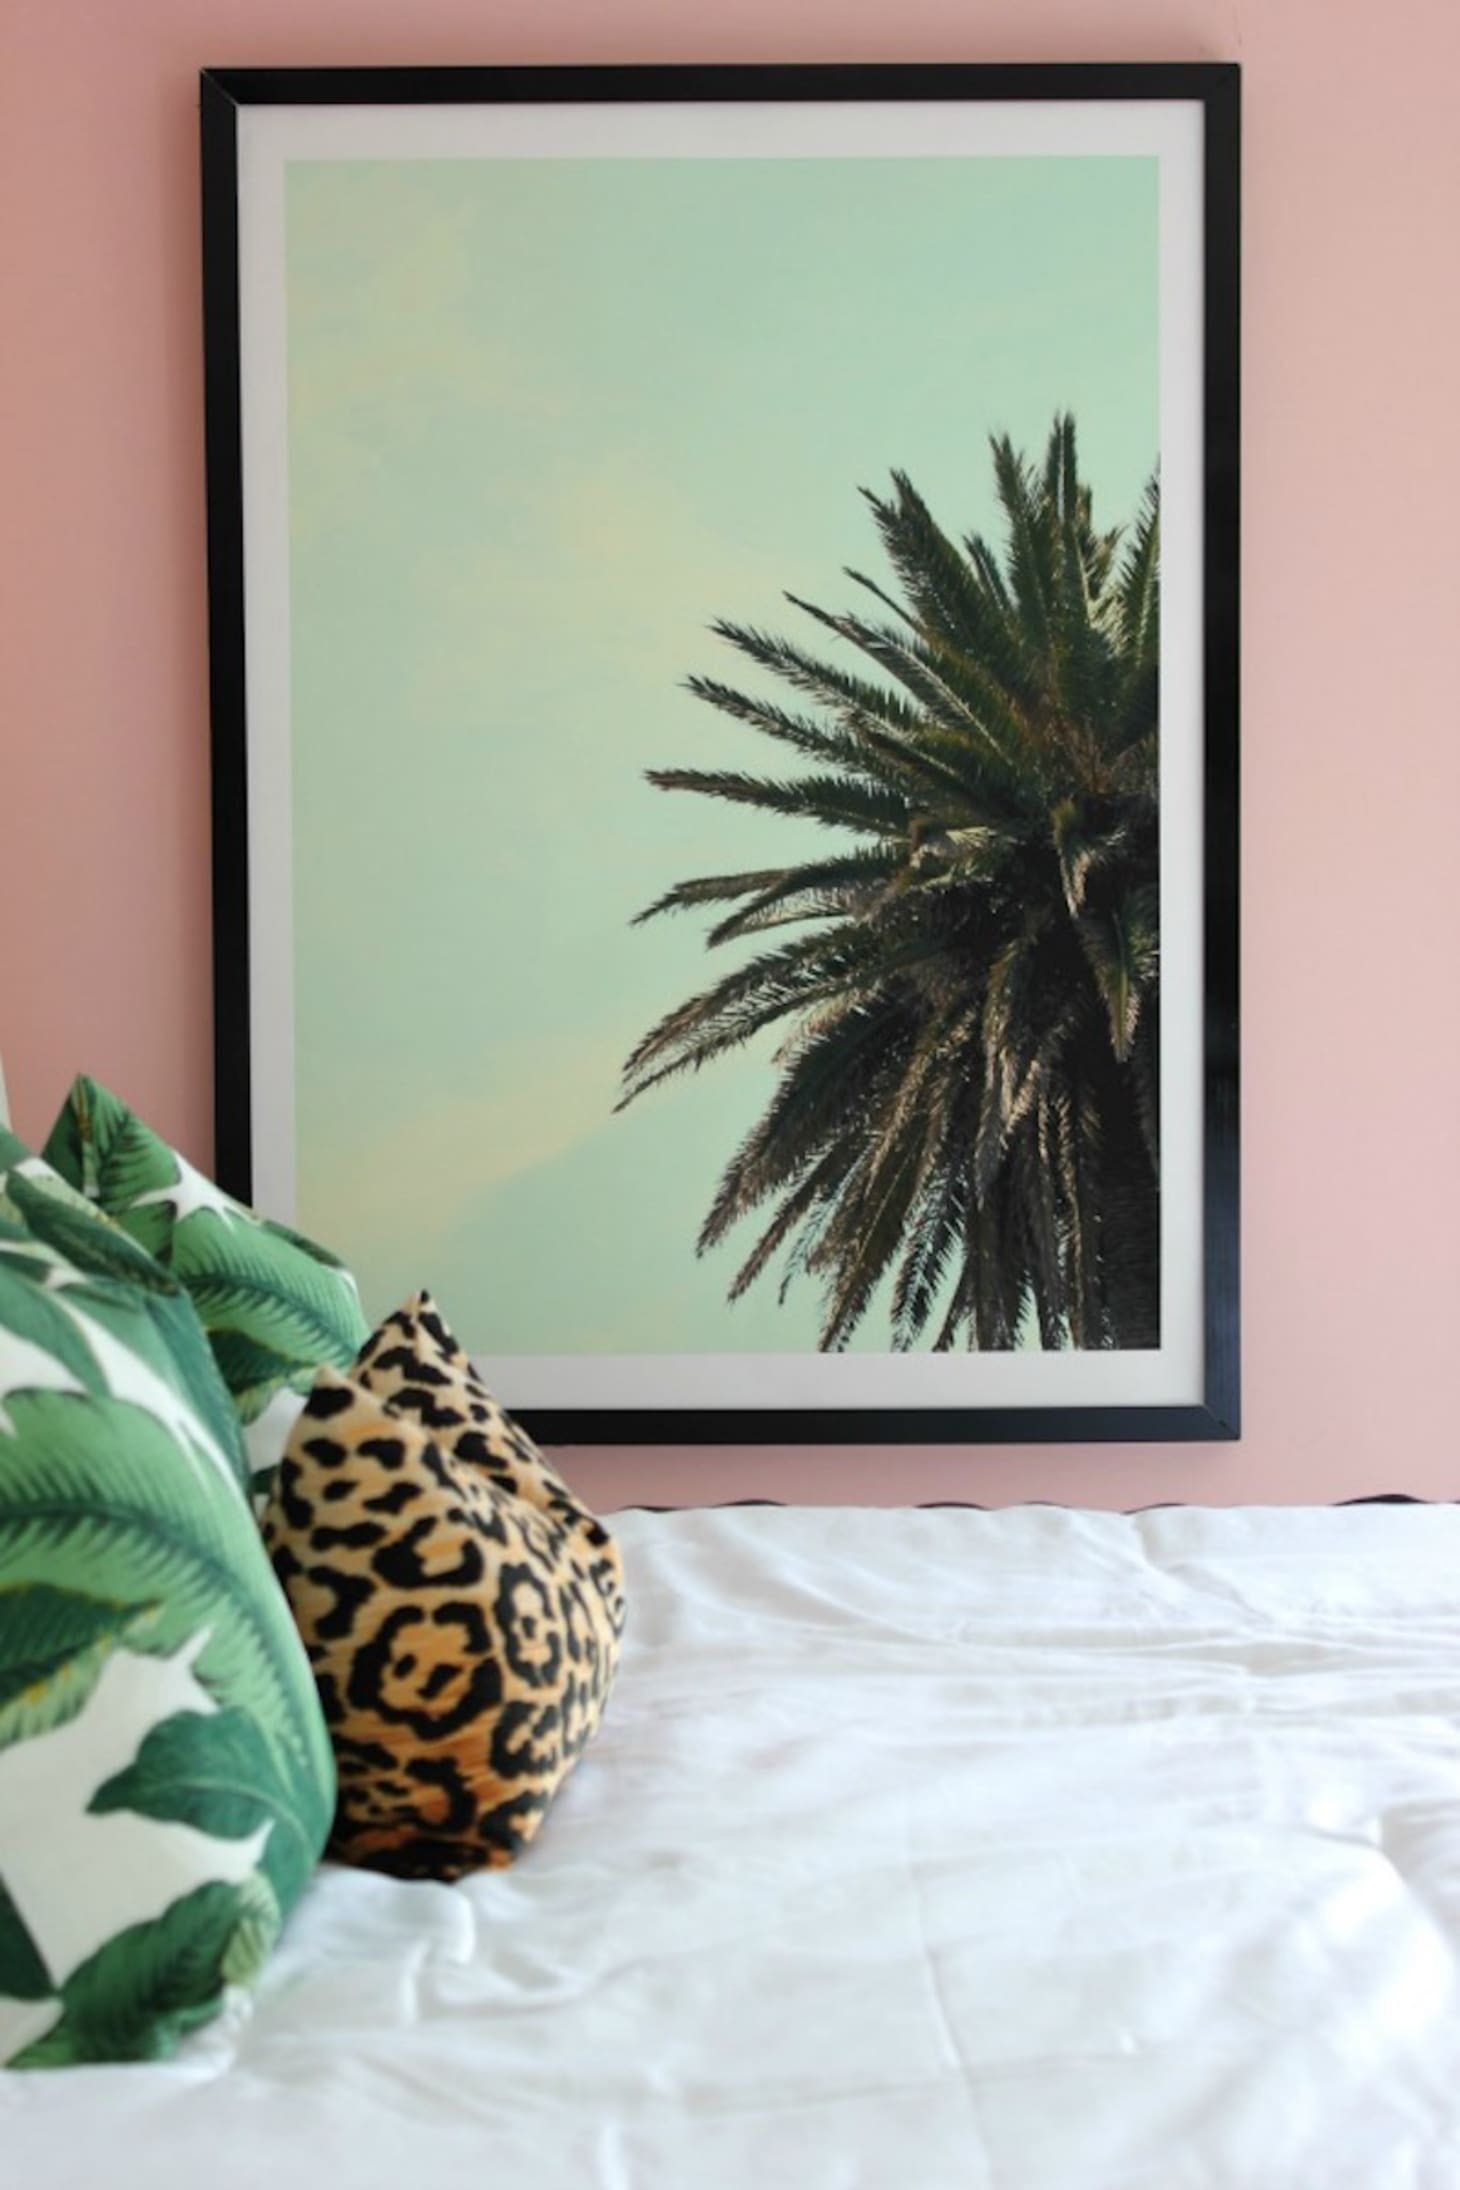 Large Picture Frames You Can Make On The Cheap Apartment